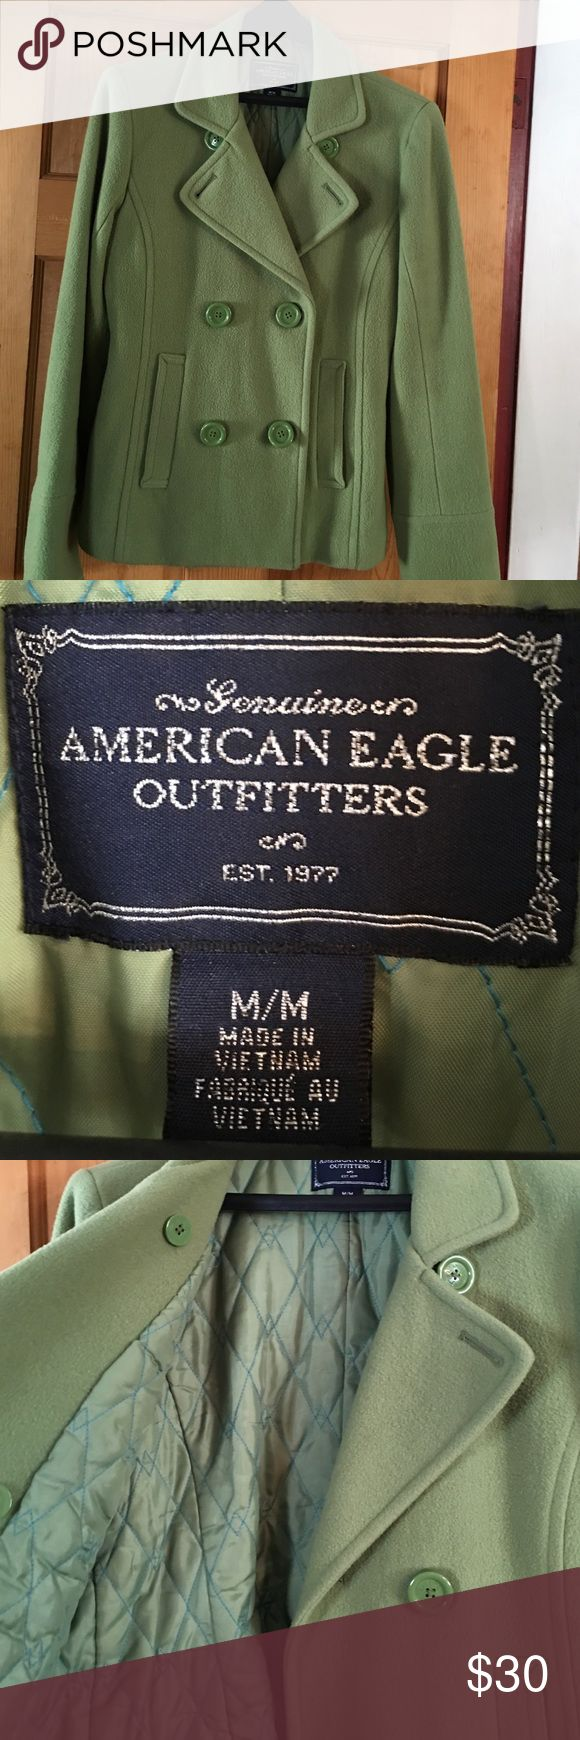 American eagle green winter coat Green Thick wool blend winter coat. Nice and warm American Eagle Outfitters Jackets & Coats Pea Coats